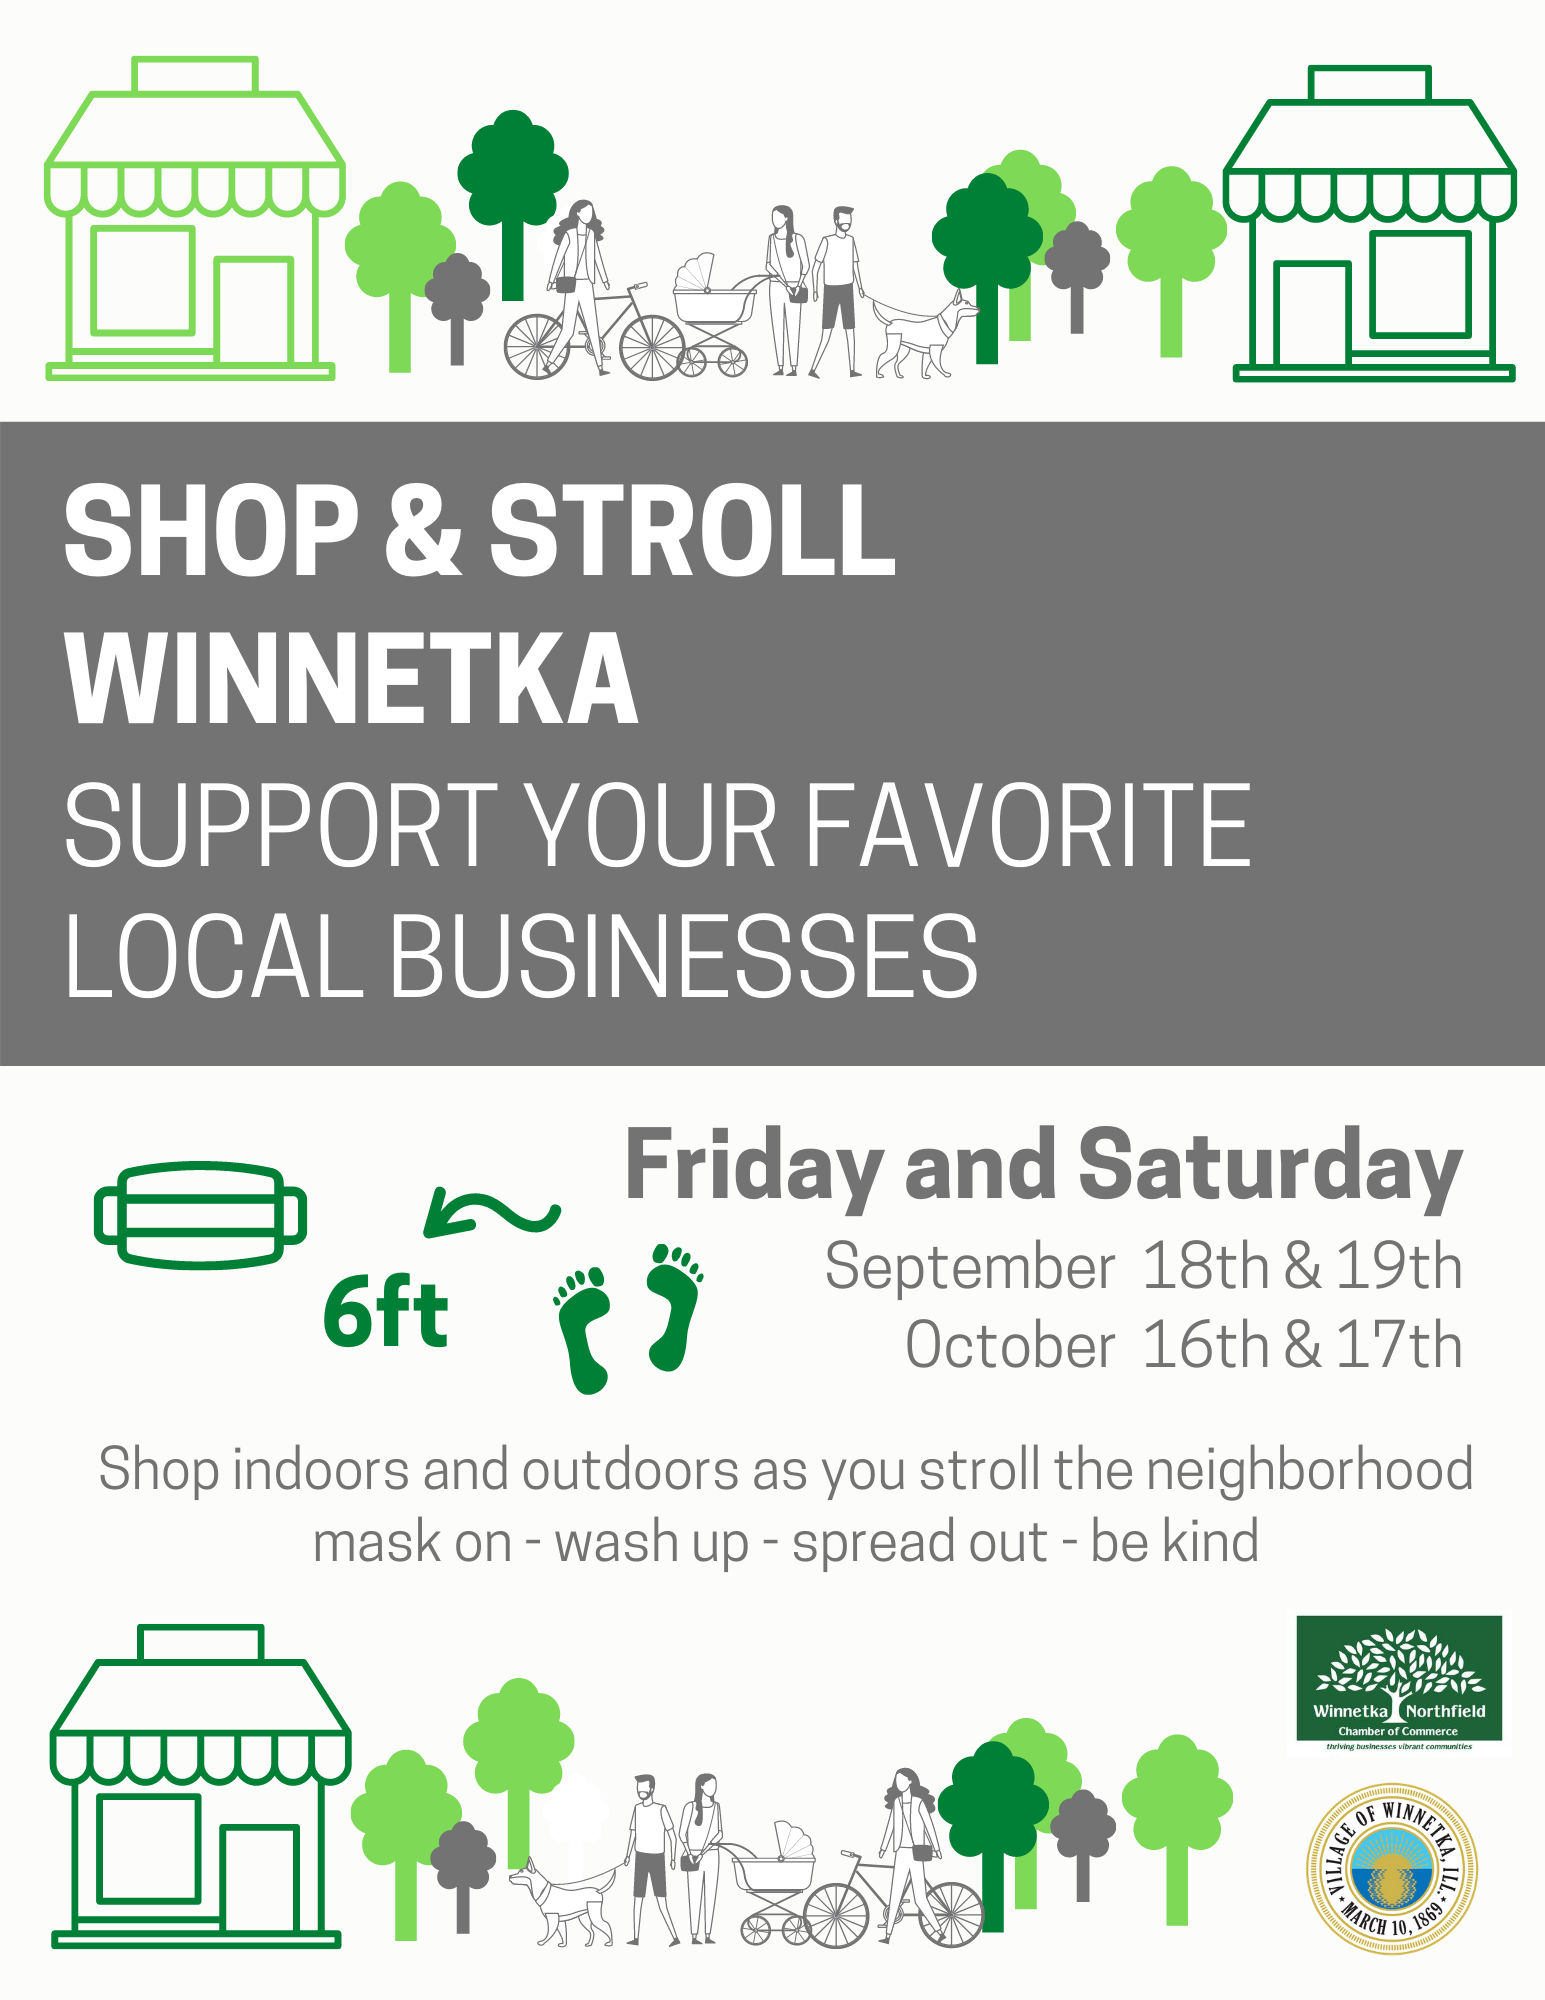 Shop & stroll Winnetka: support your favorite local businesses Friday and Saturday August 14 &15, September 18 & 19, October 16 & 17. Shop indoors and outdoors as you stroll the neighborhood.